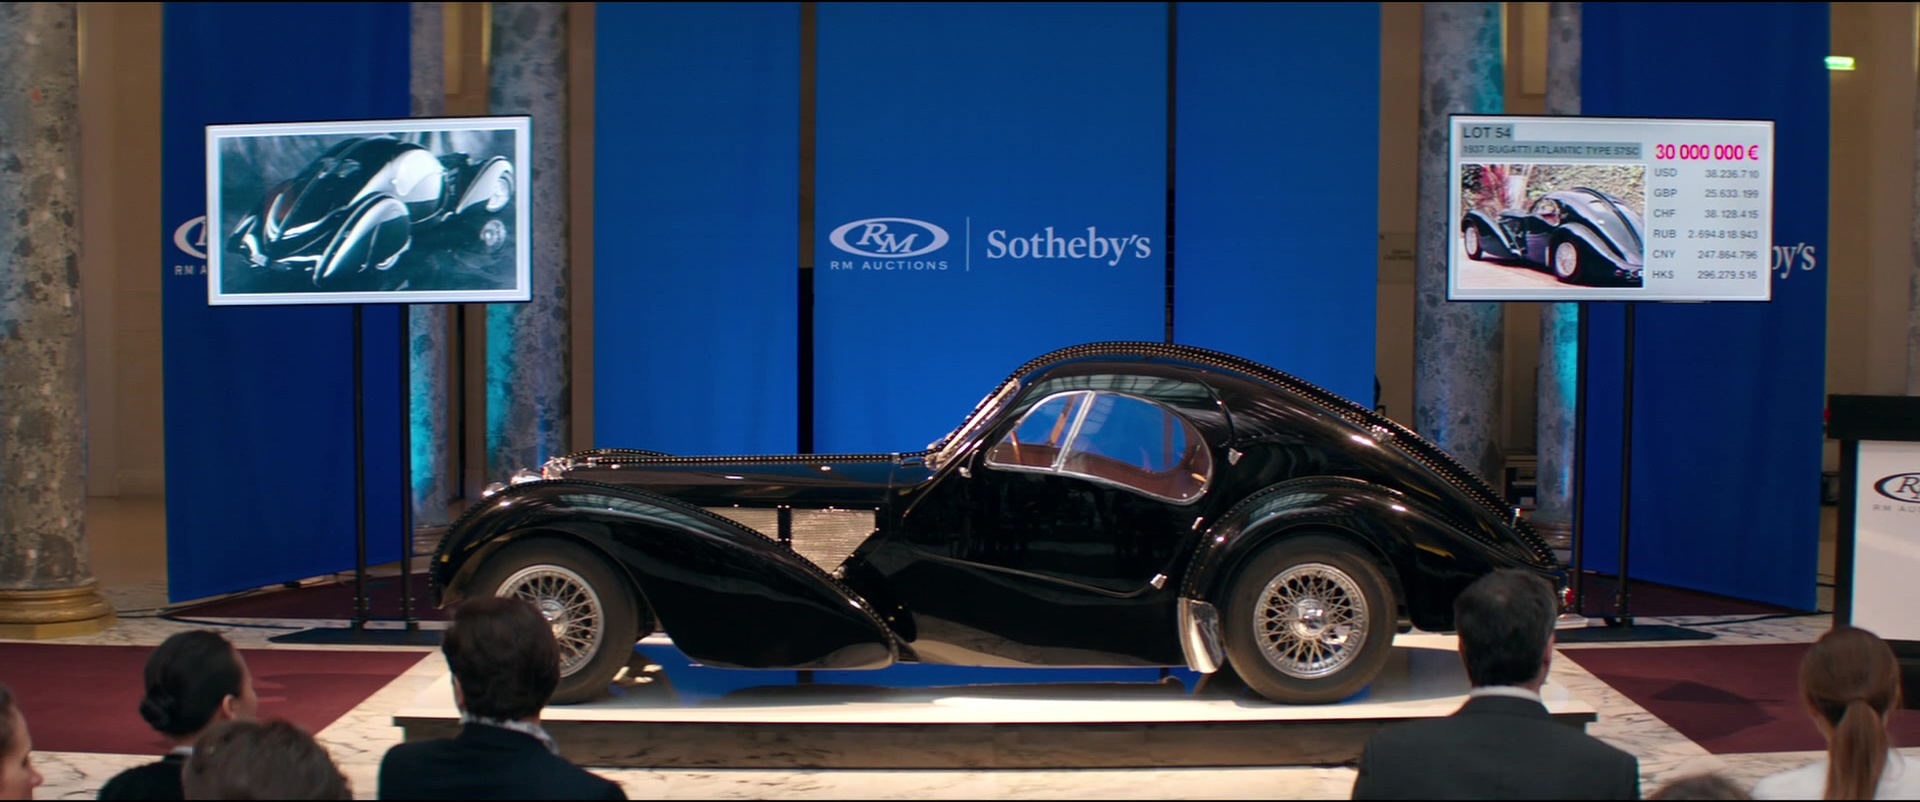 Sotheby S Car Auction In Overdrive 2017 Movie